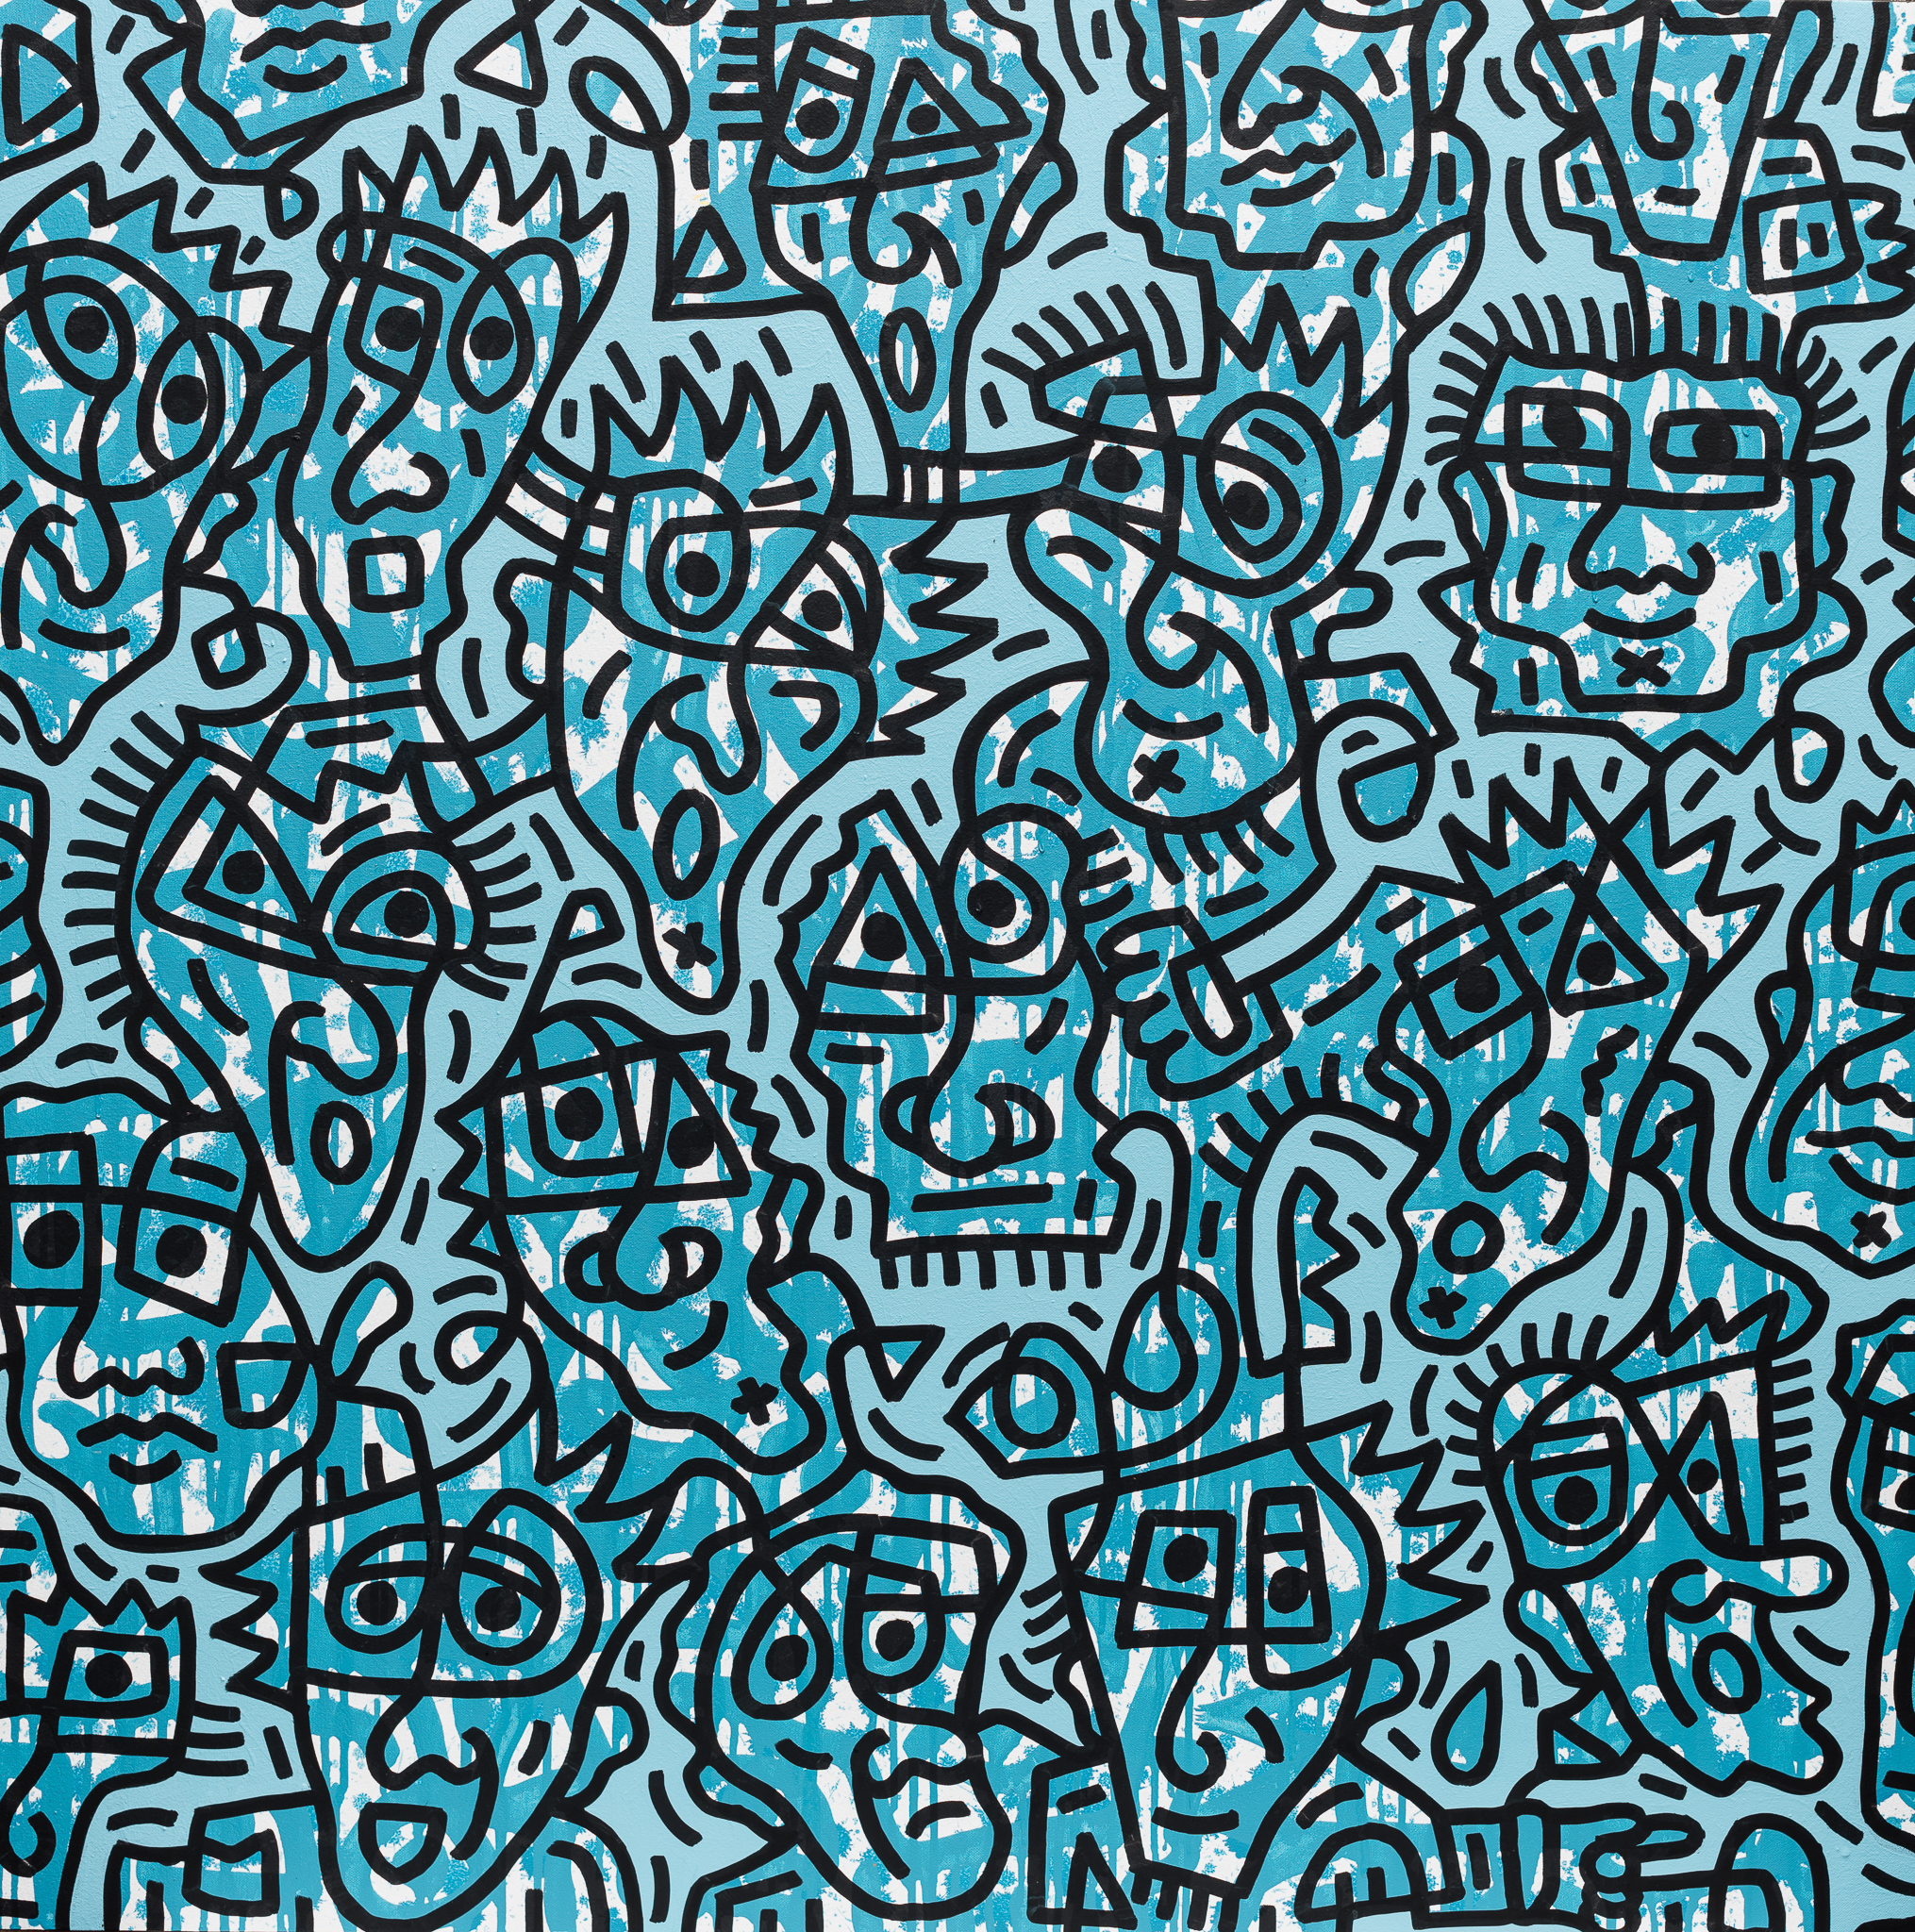 Blue facial forms #1, enamel on canvas, 100x100cm, SOLD